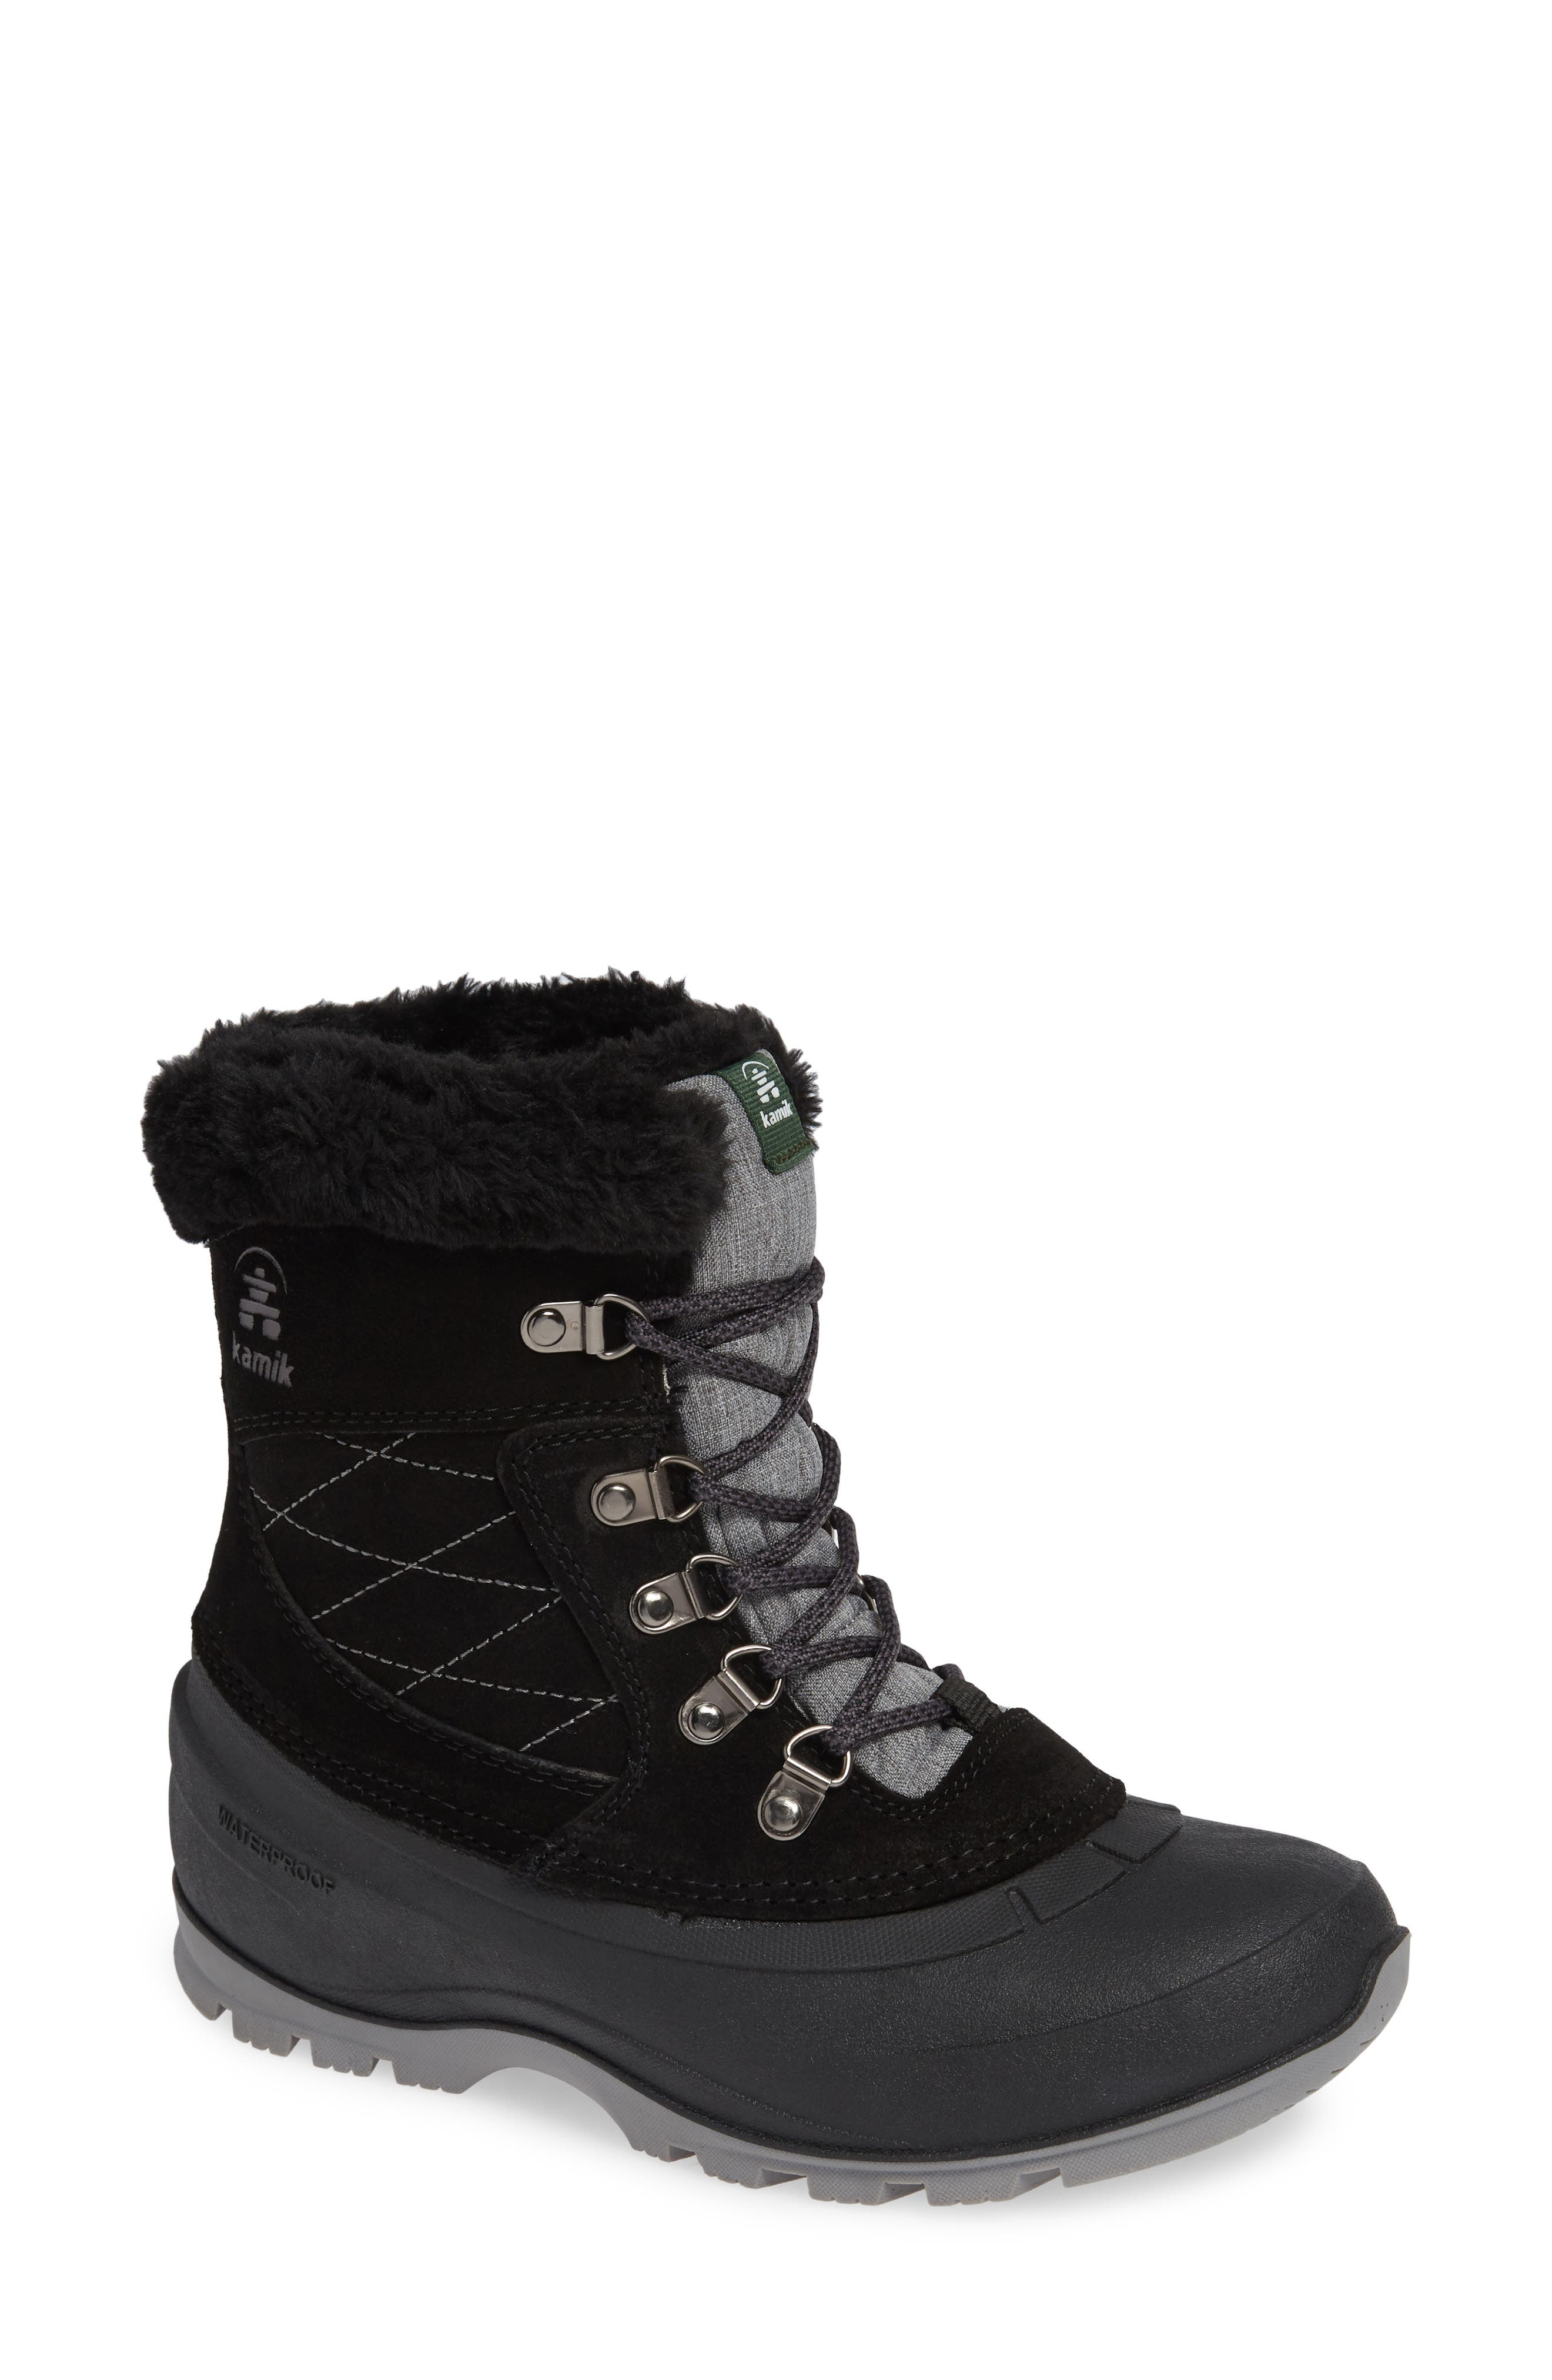 Kamik Snovalley1 Waterproof Thinsulate Insulated Snow Boot, Black